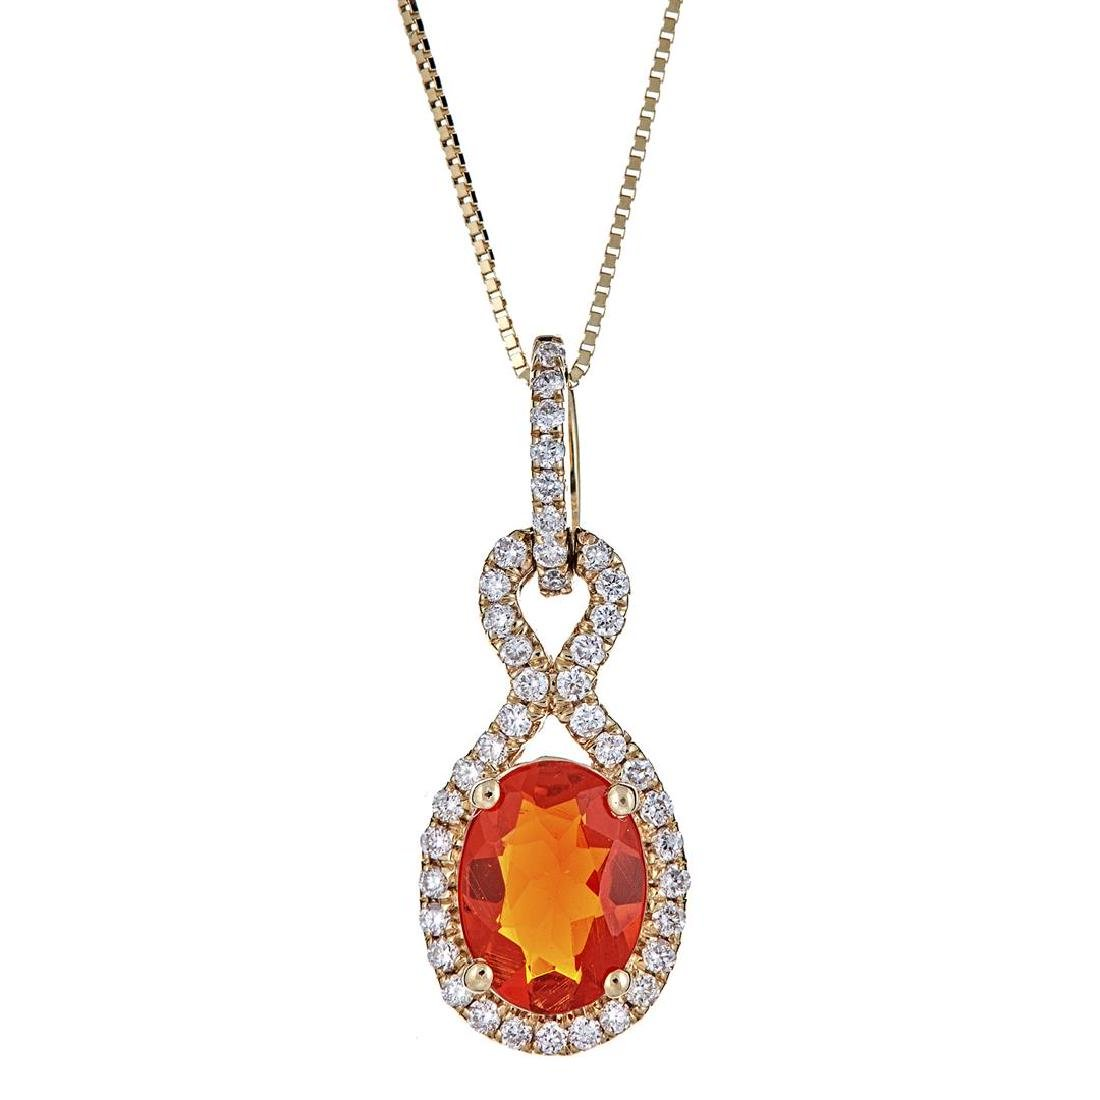 0.77 ctw Fire Opal and Diamond Pendant - 14KT Yellow